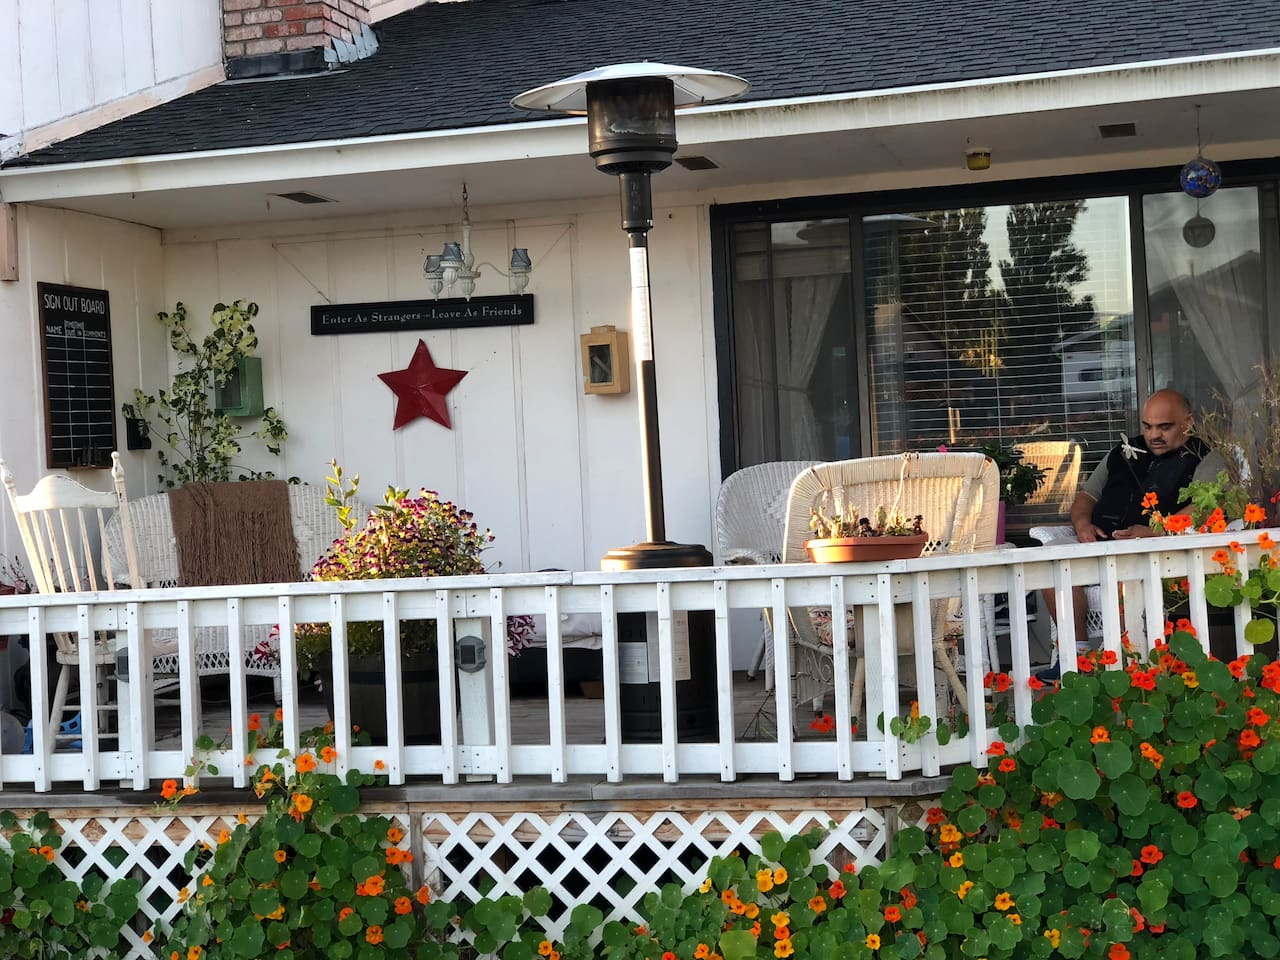 Enjoy some wine on the porch!